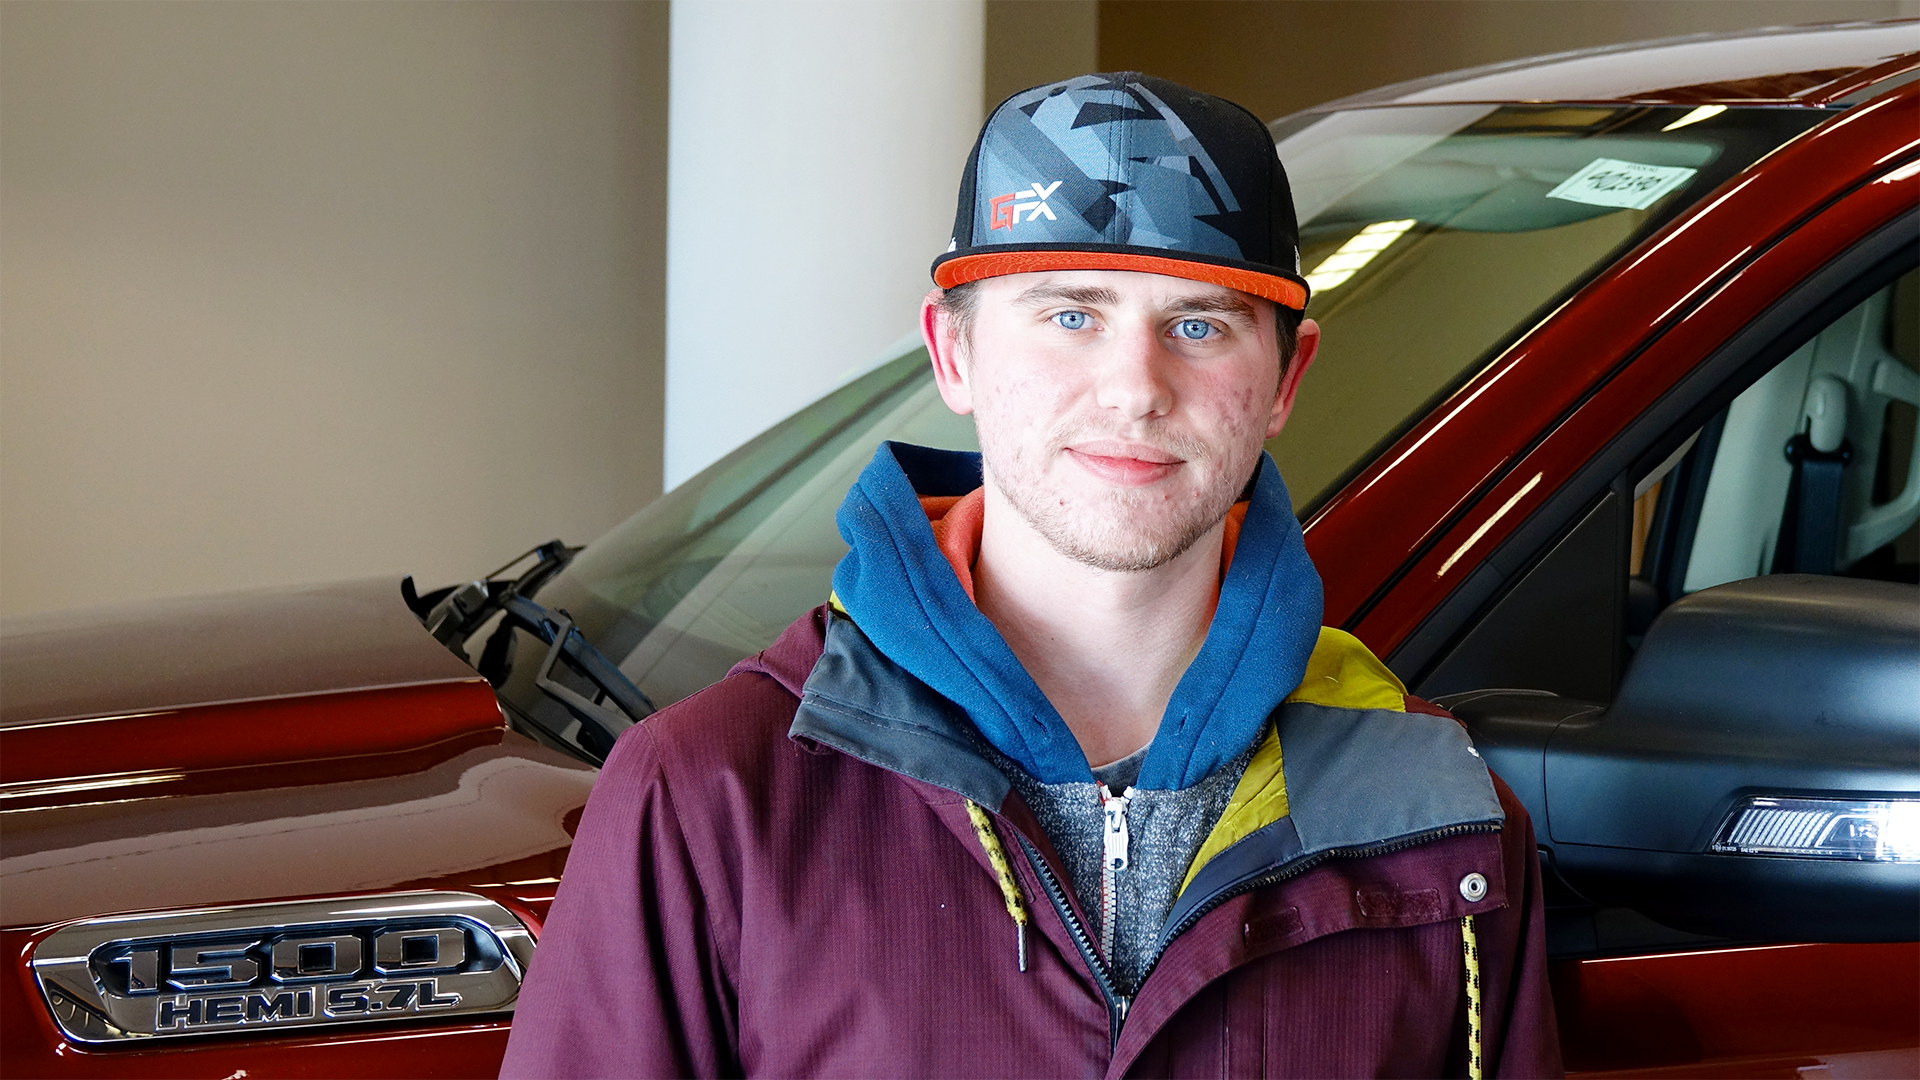 Meet the Eide Chrysler EOM, Nick Anderson!